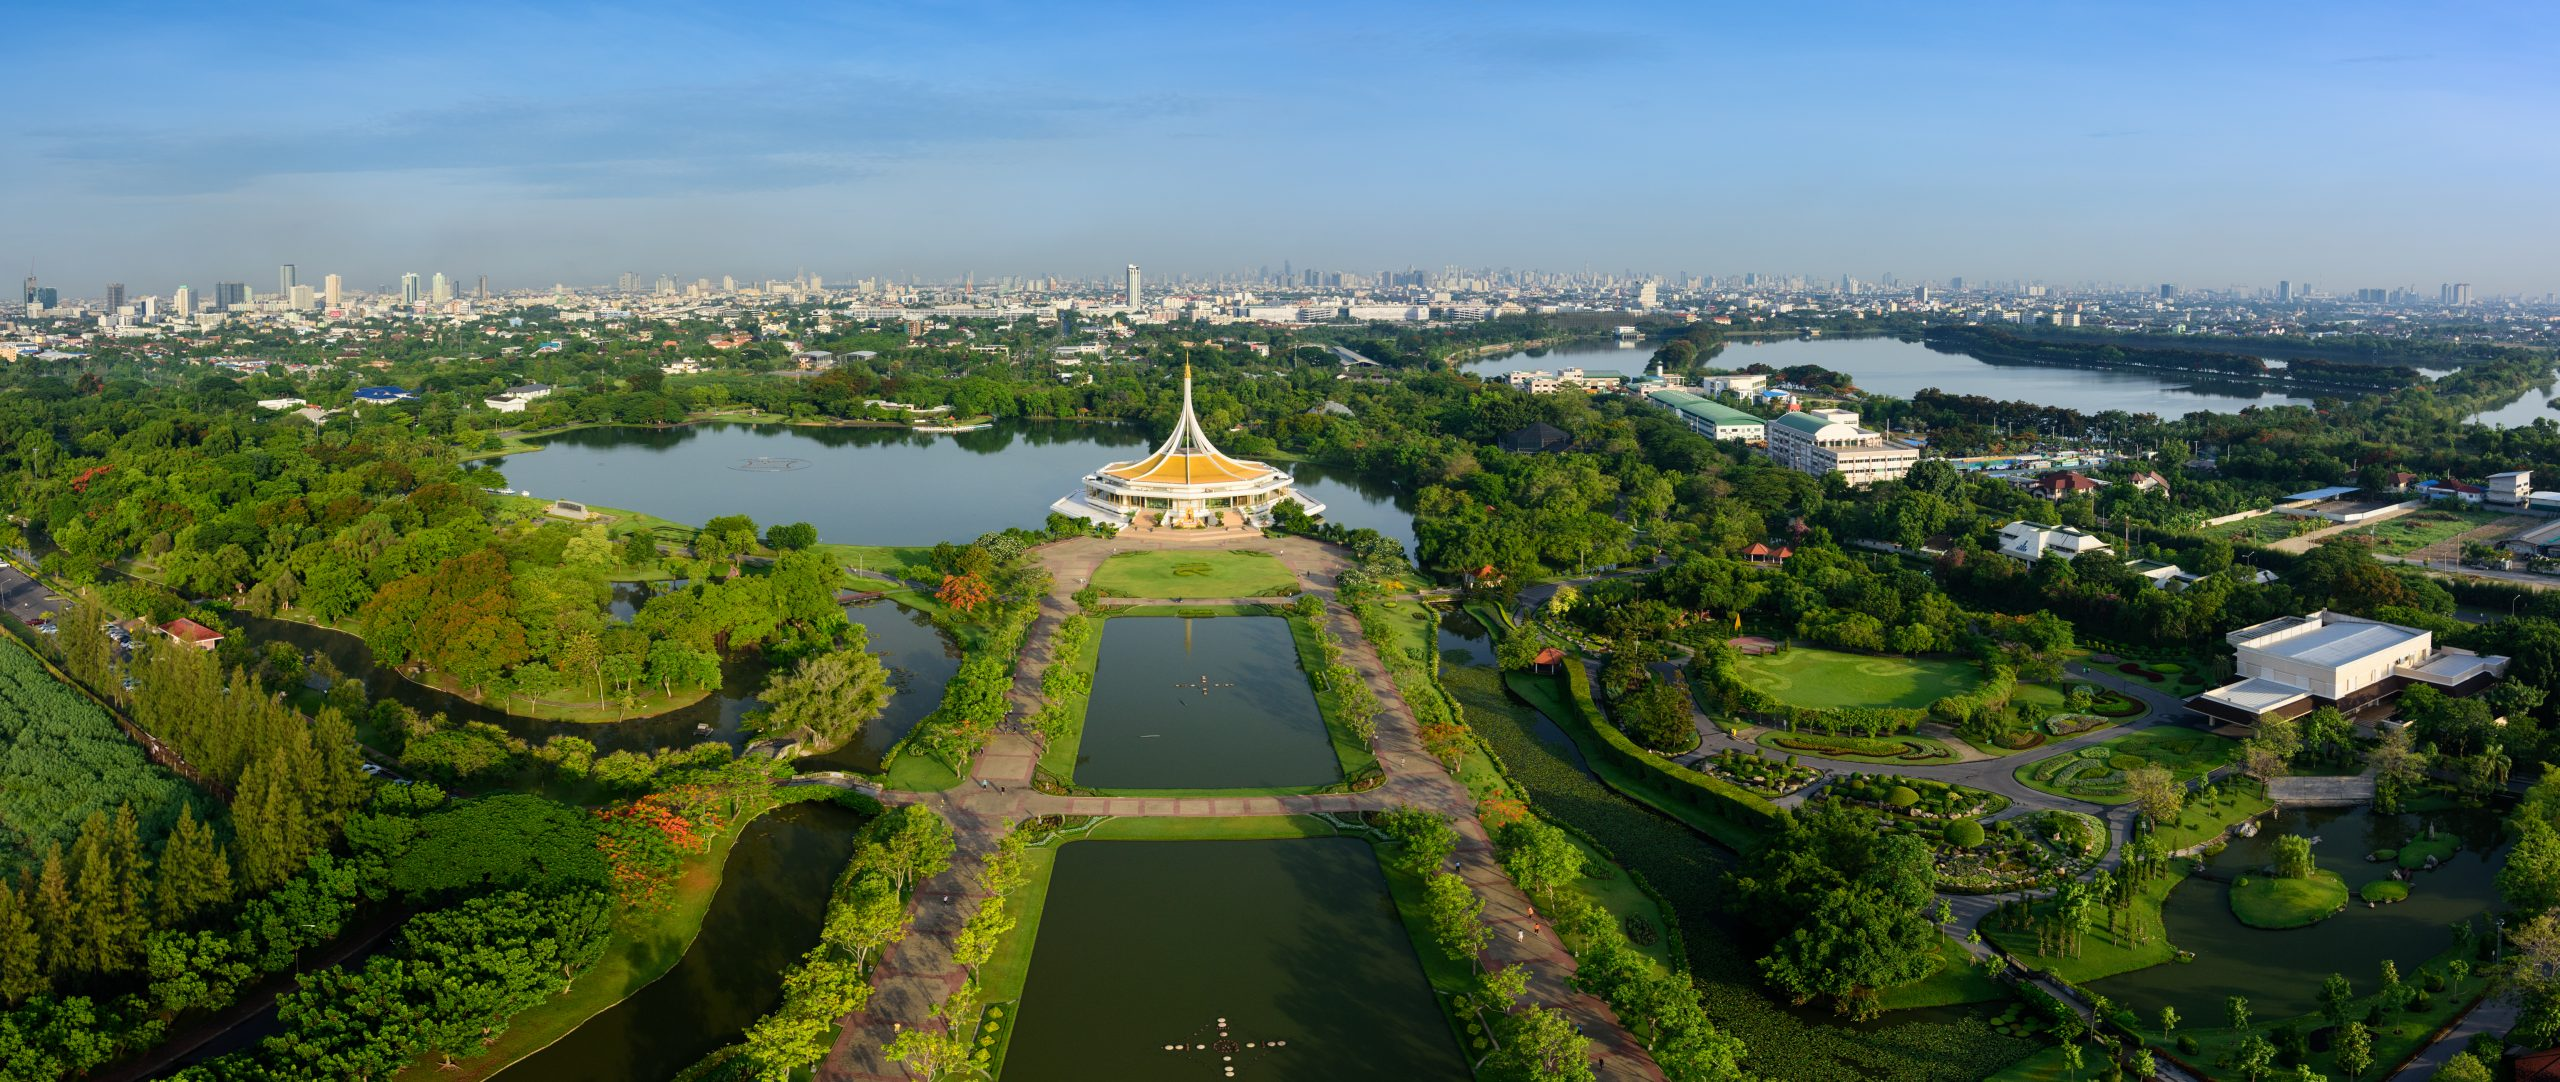 Bangkok Green Spaces